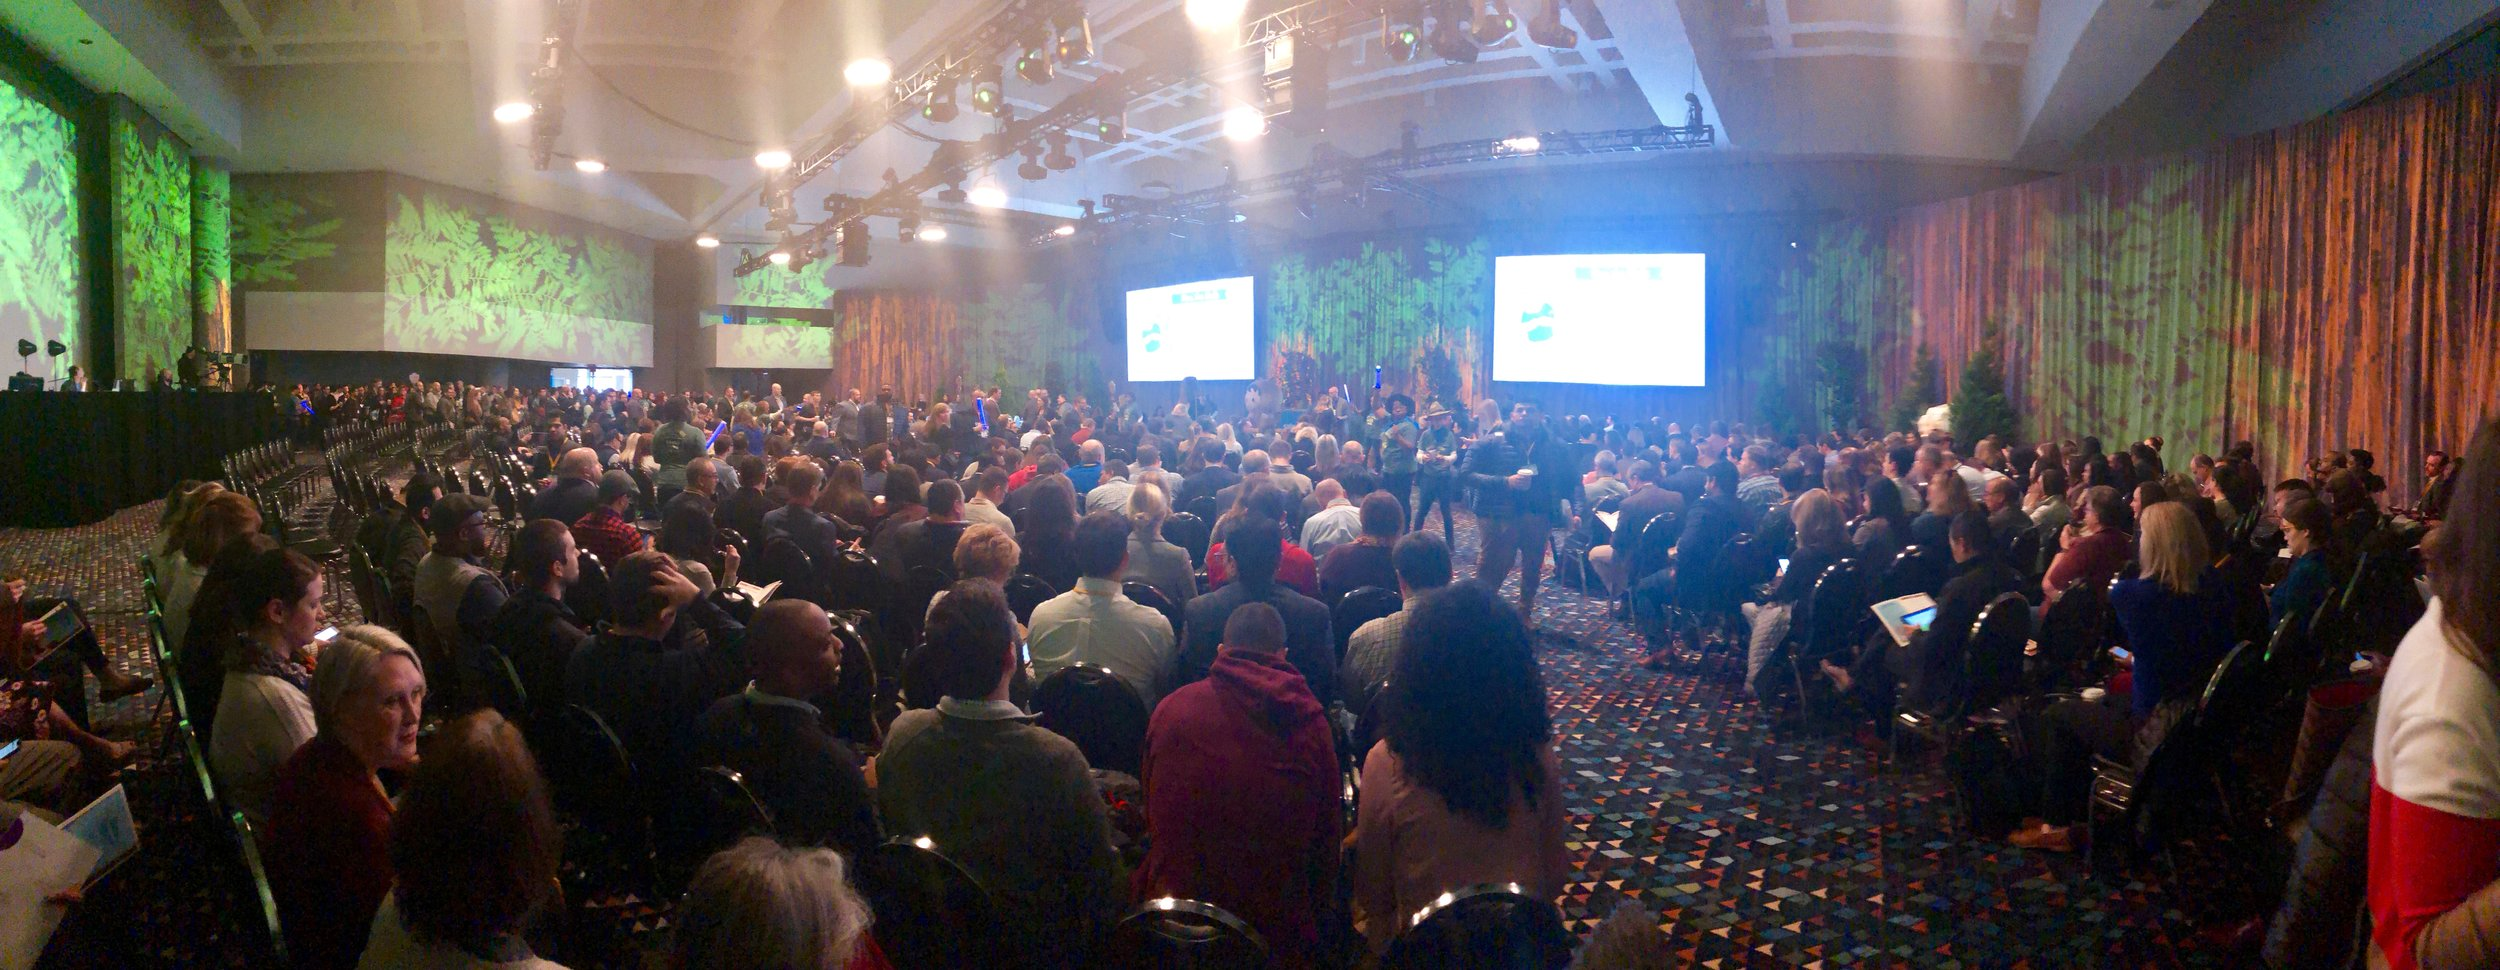 The keynote was packed out! Standing room only. -